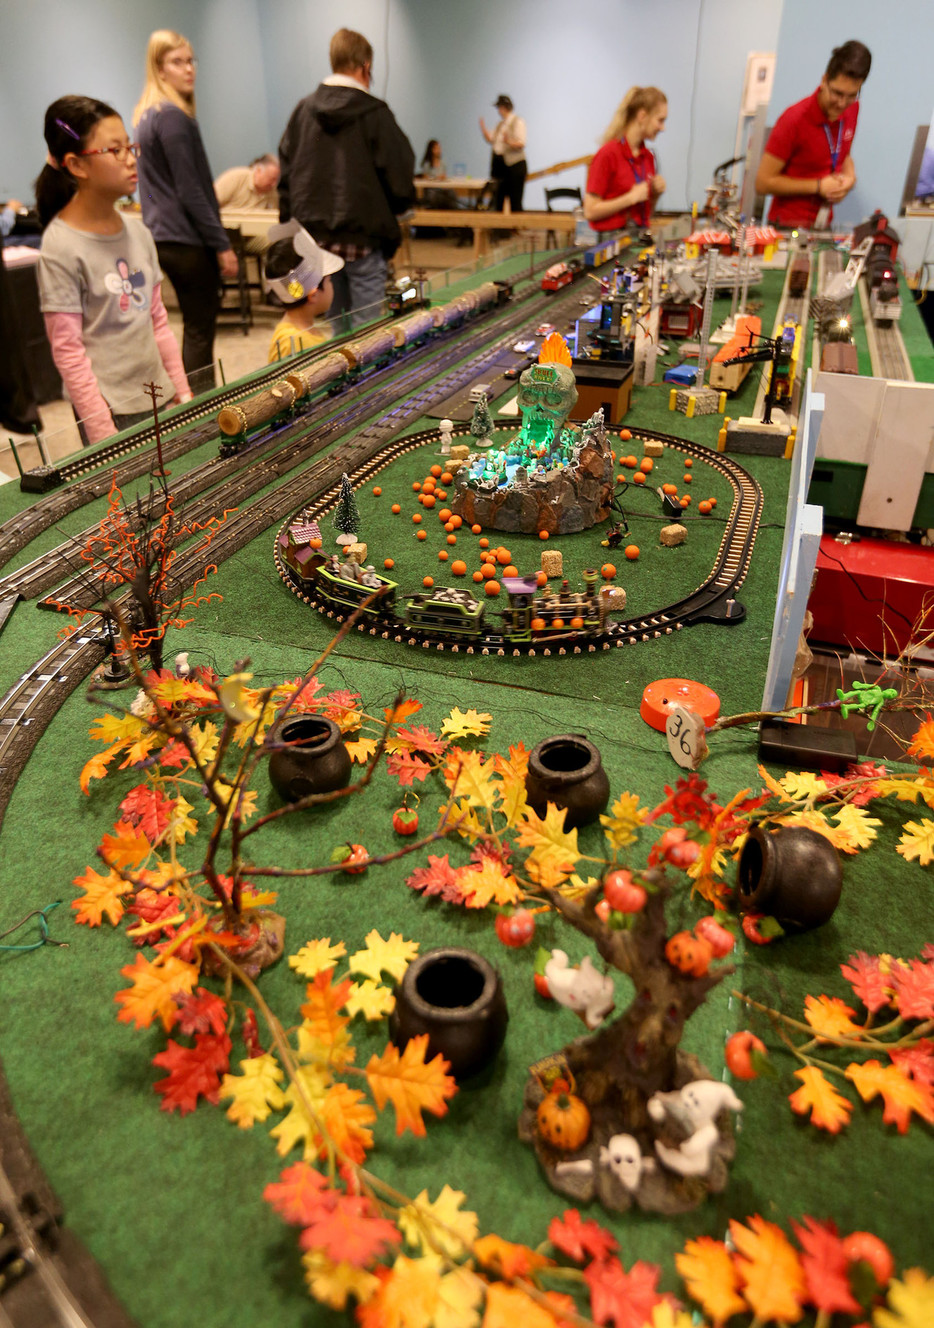 Photos All Aboard Kids Learn All About Trains At Museum Event